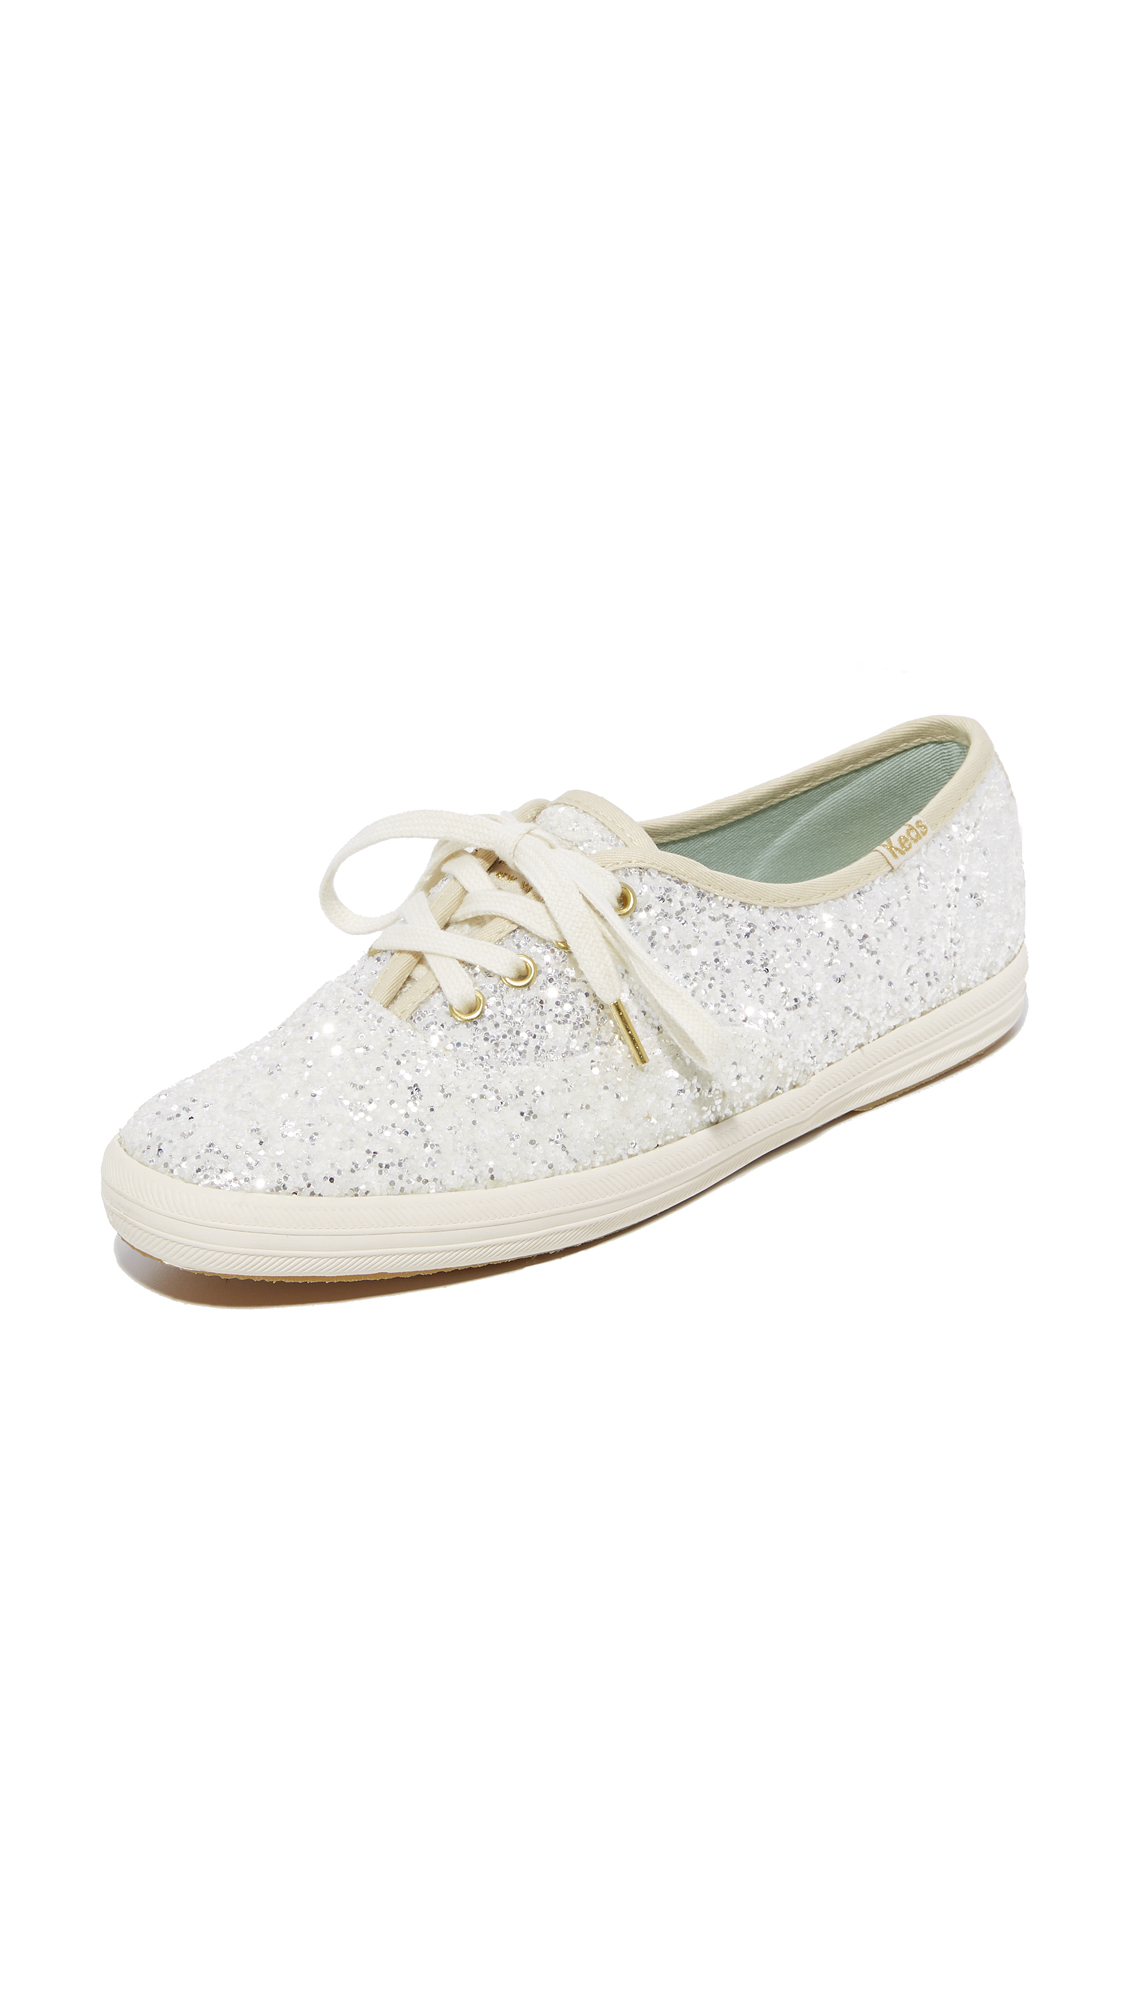 Keds x Kate Spade New York Glitter Sneakers - Cream